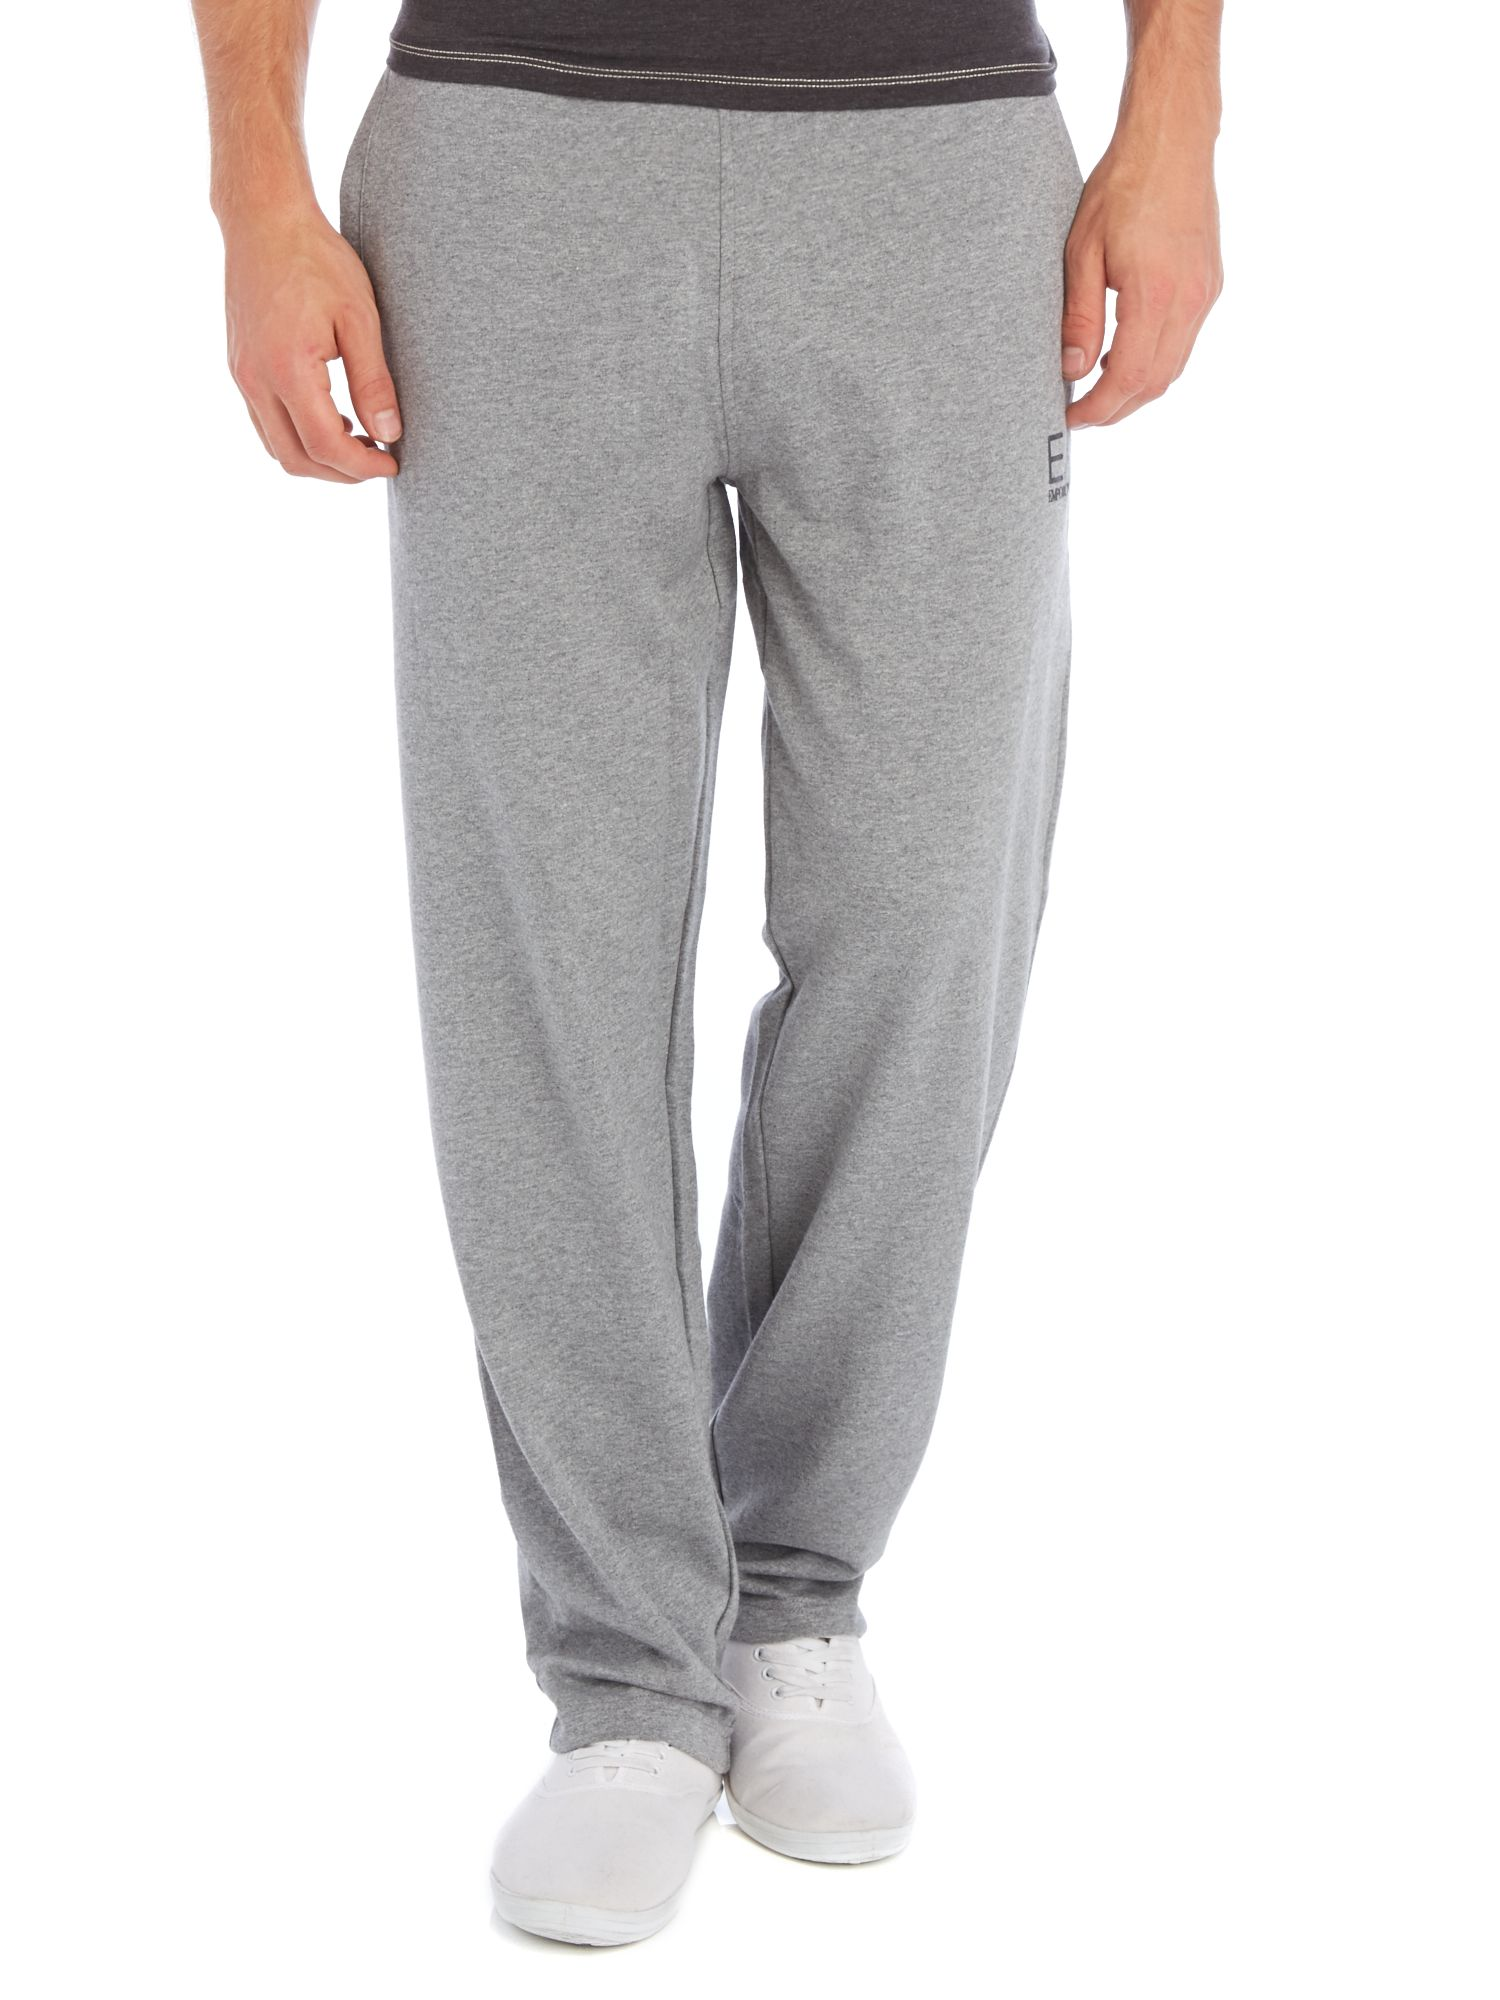 Train core ID sweat pant